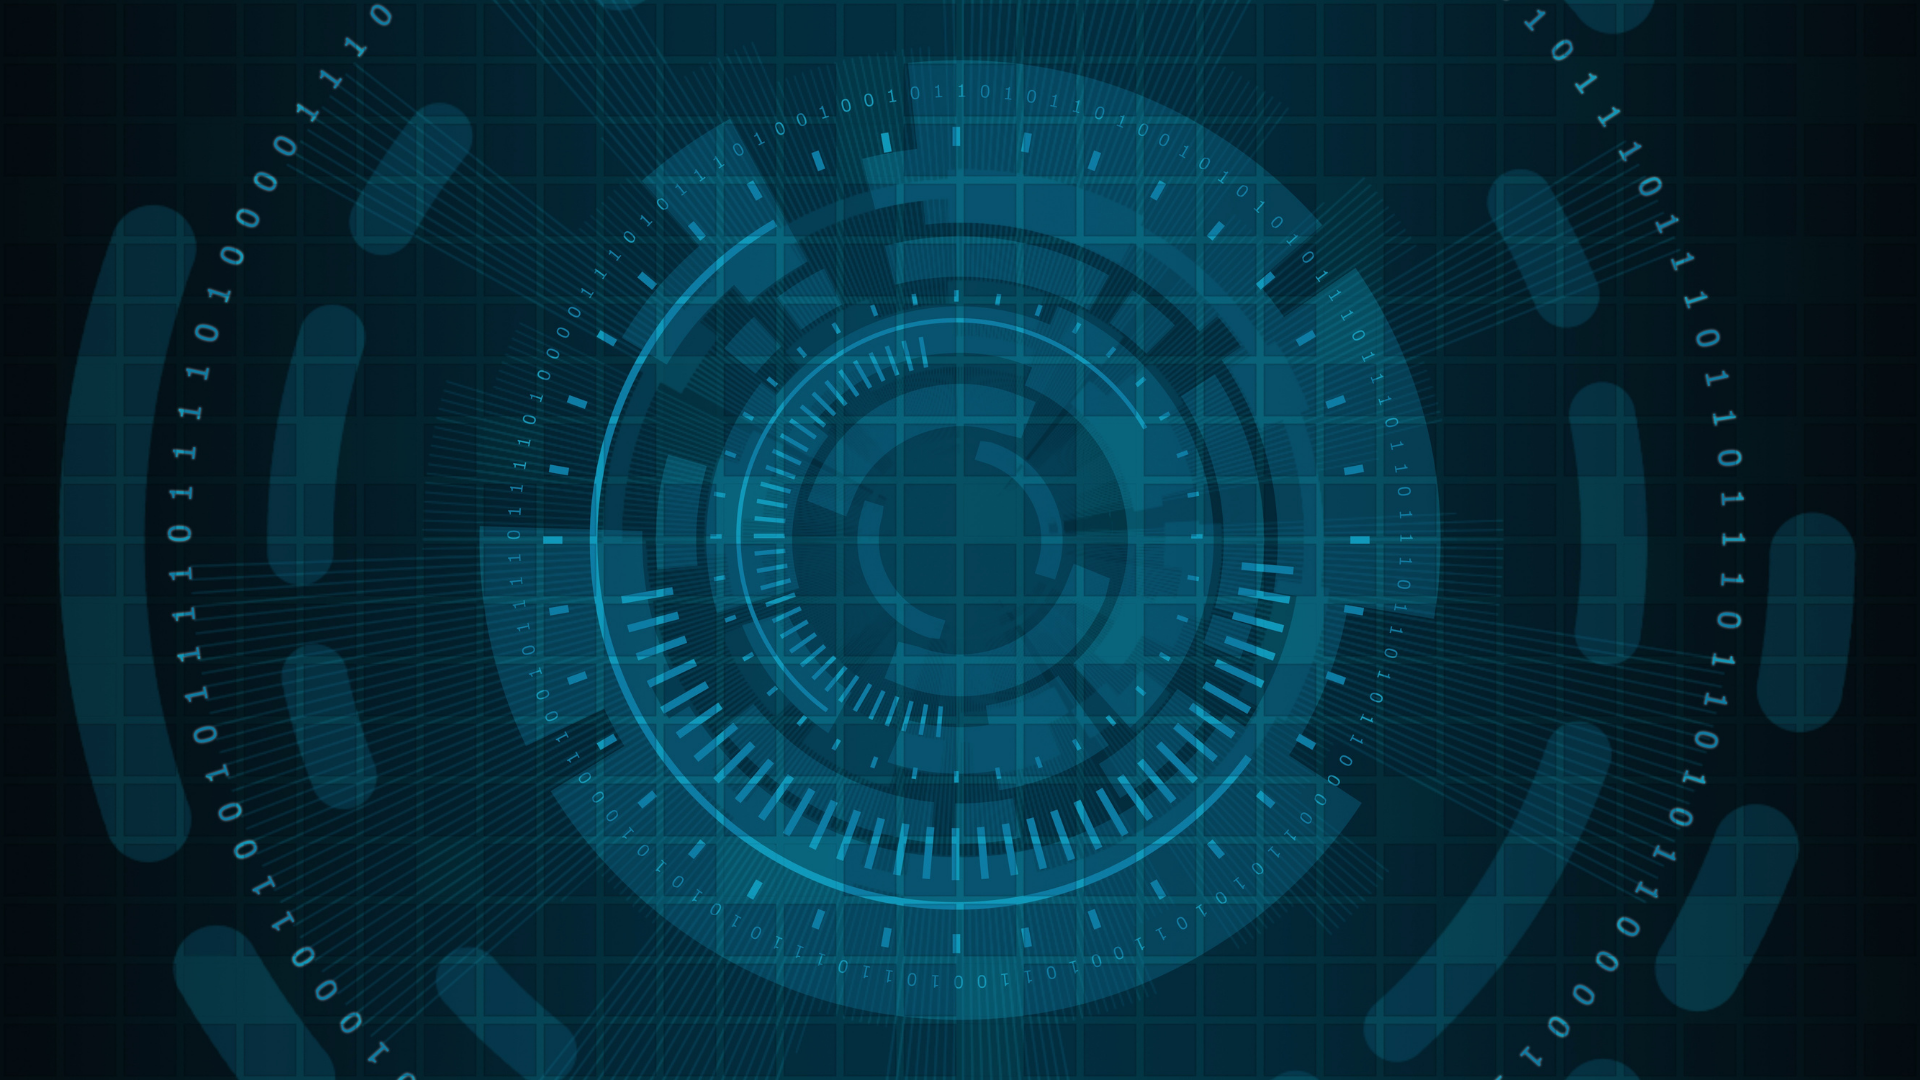 Cyber security digital concept